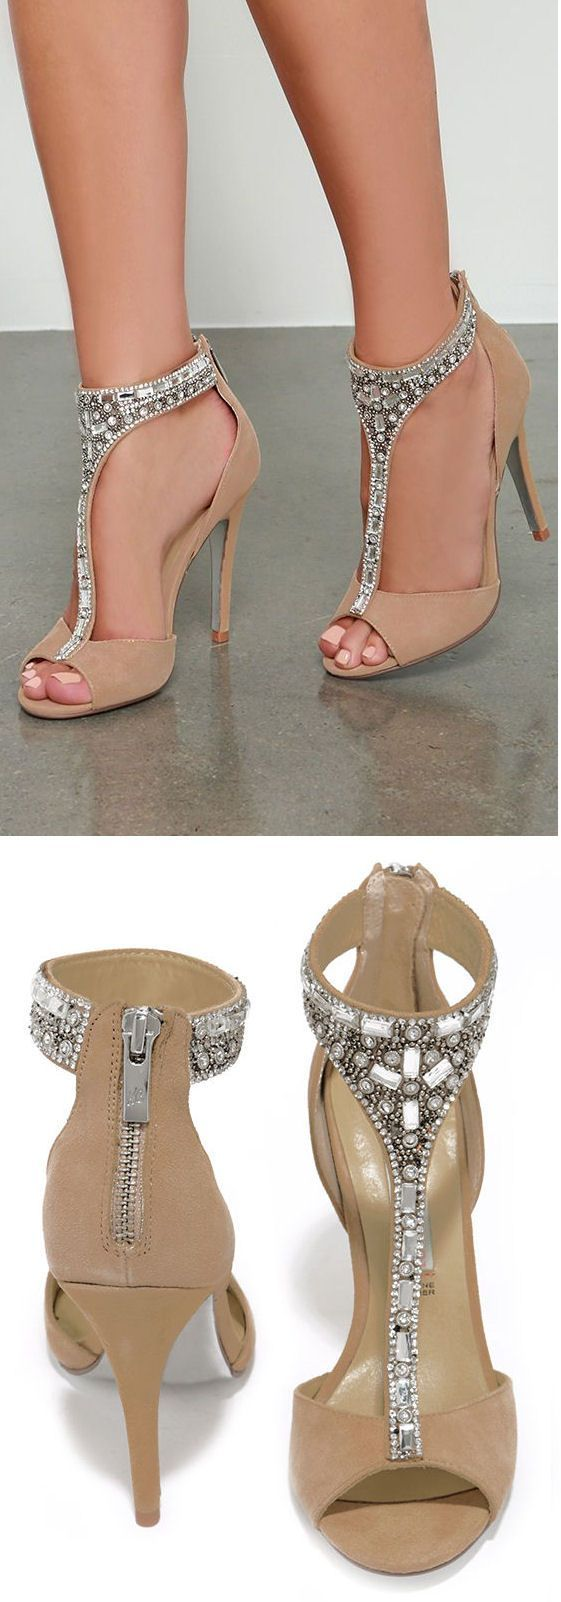 40 Heels Shoes For Women Which Are Really Classy